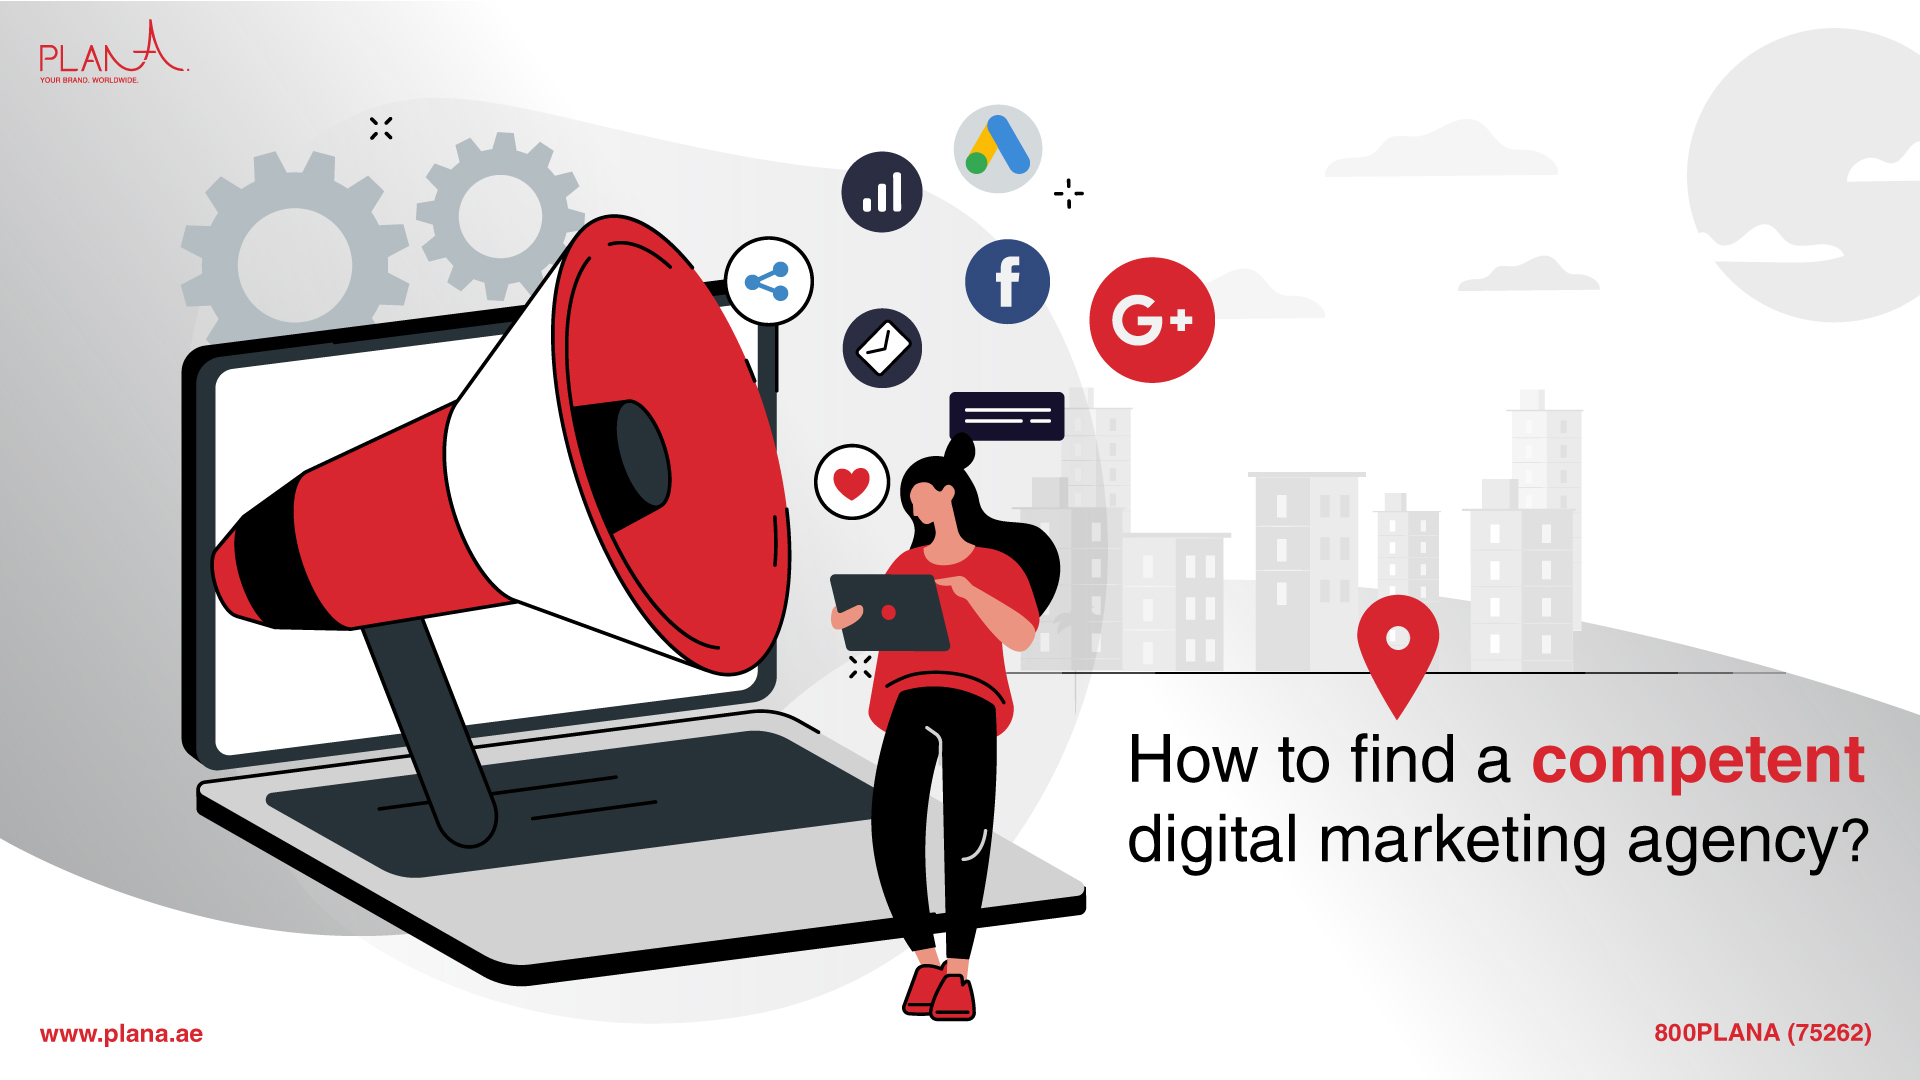 How to find a competent digital marketing agency?